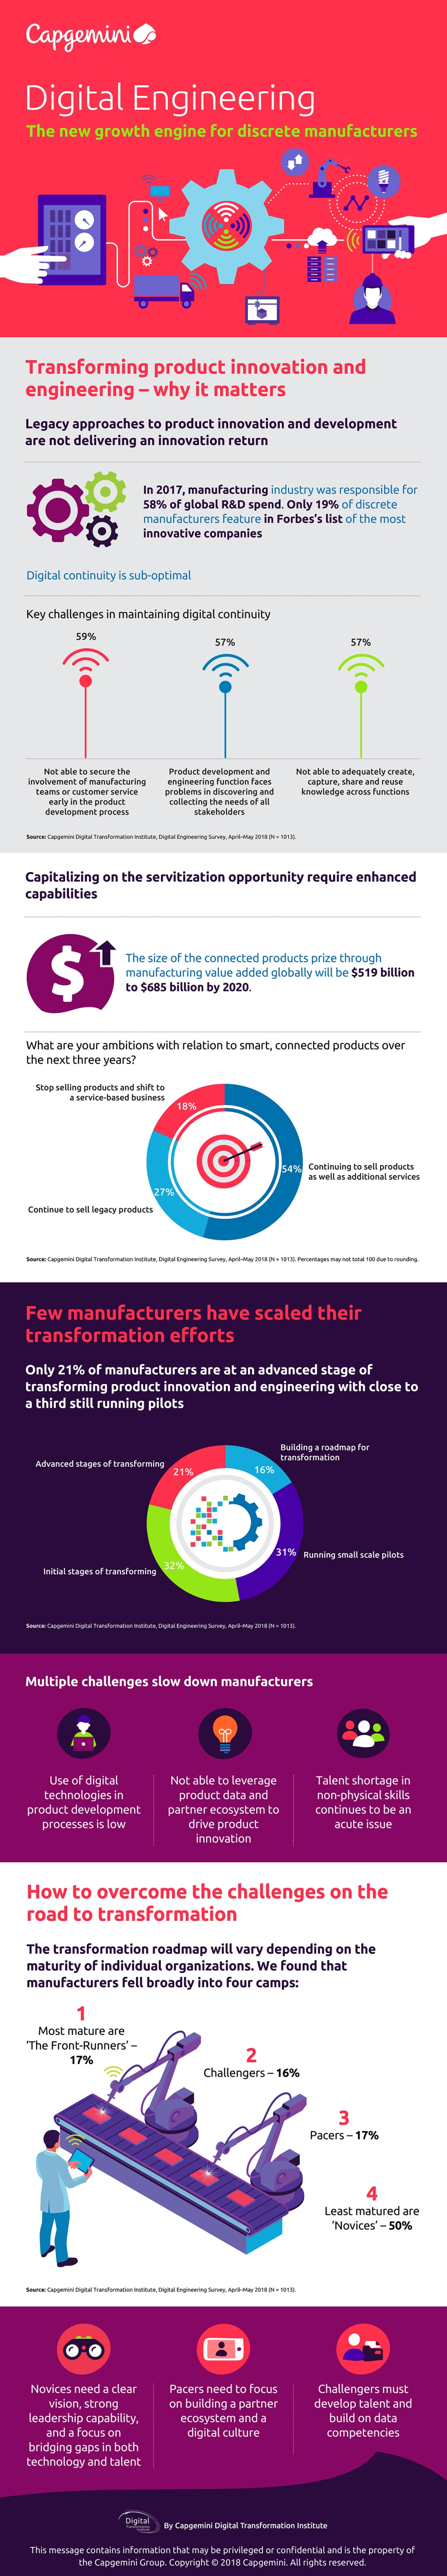 A new report by Capgemini's Digital Transformation Institute reveals that the global manufacturing industry could expect to see between $519-$685 billion in value-added revenue by 2020 through the development and sale of smart, connected devices. The report also highlights that while the potential returns are significant, manufacturers need to invest in digital continuity and digital capabilities to benefit.